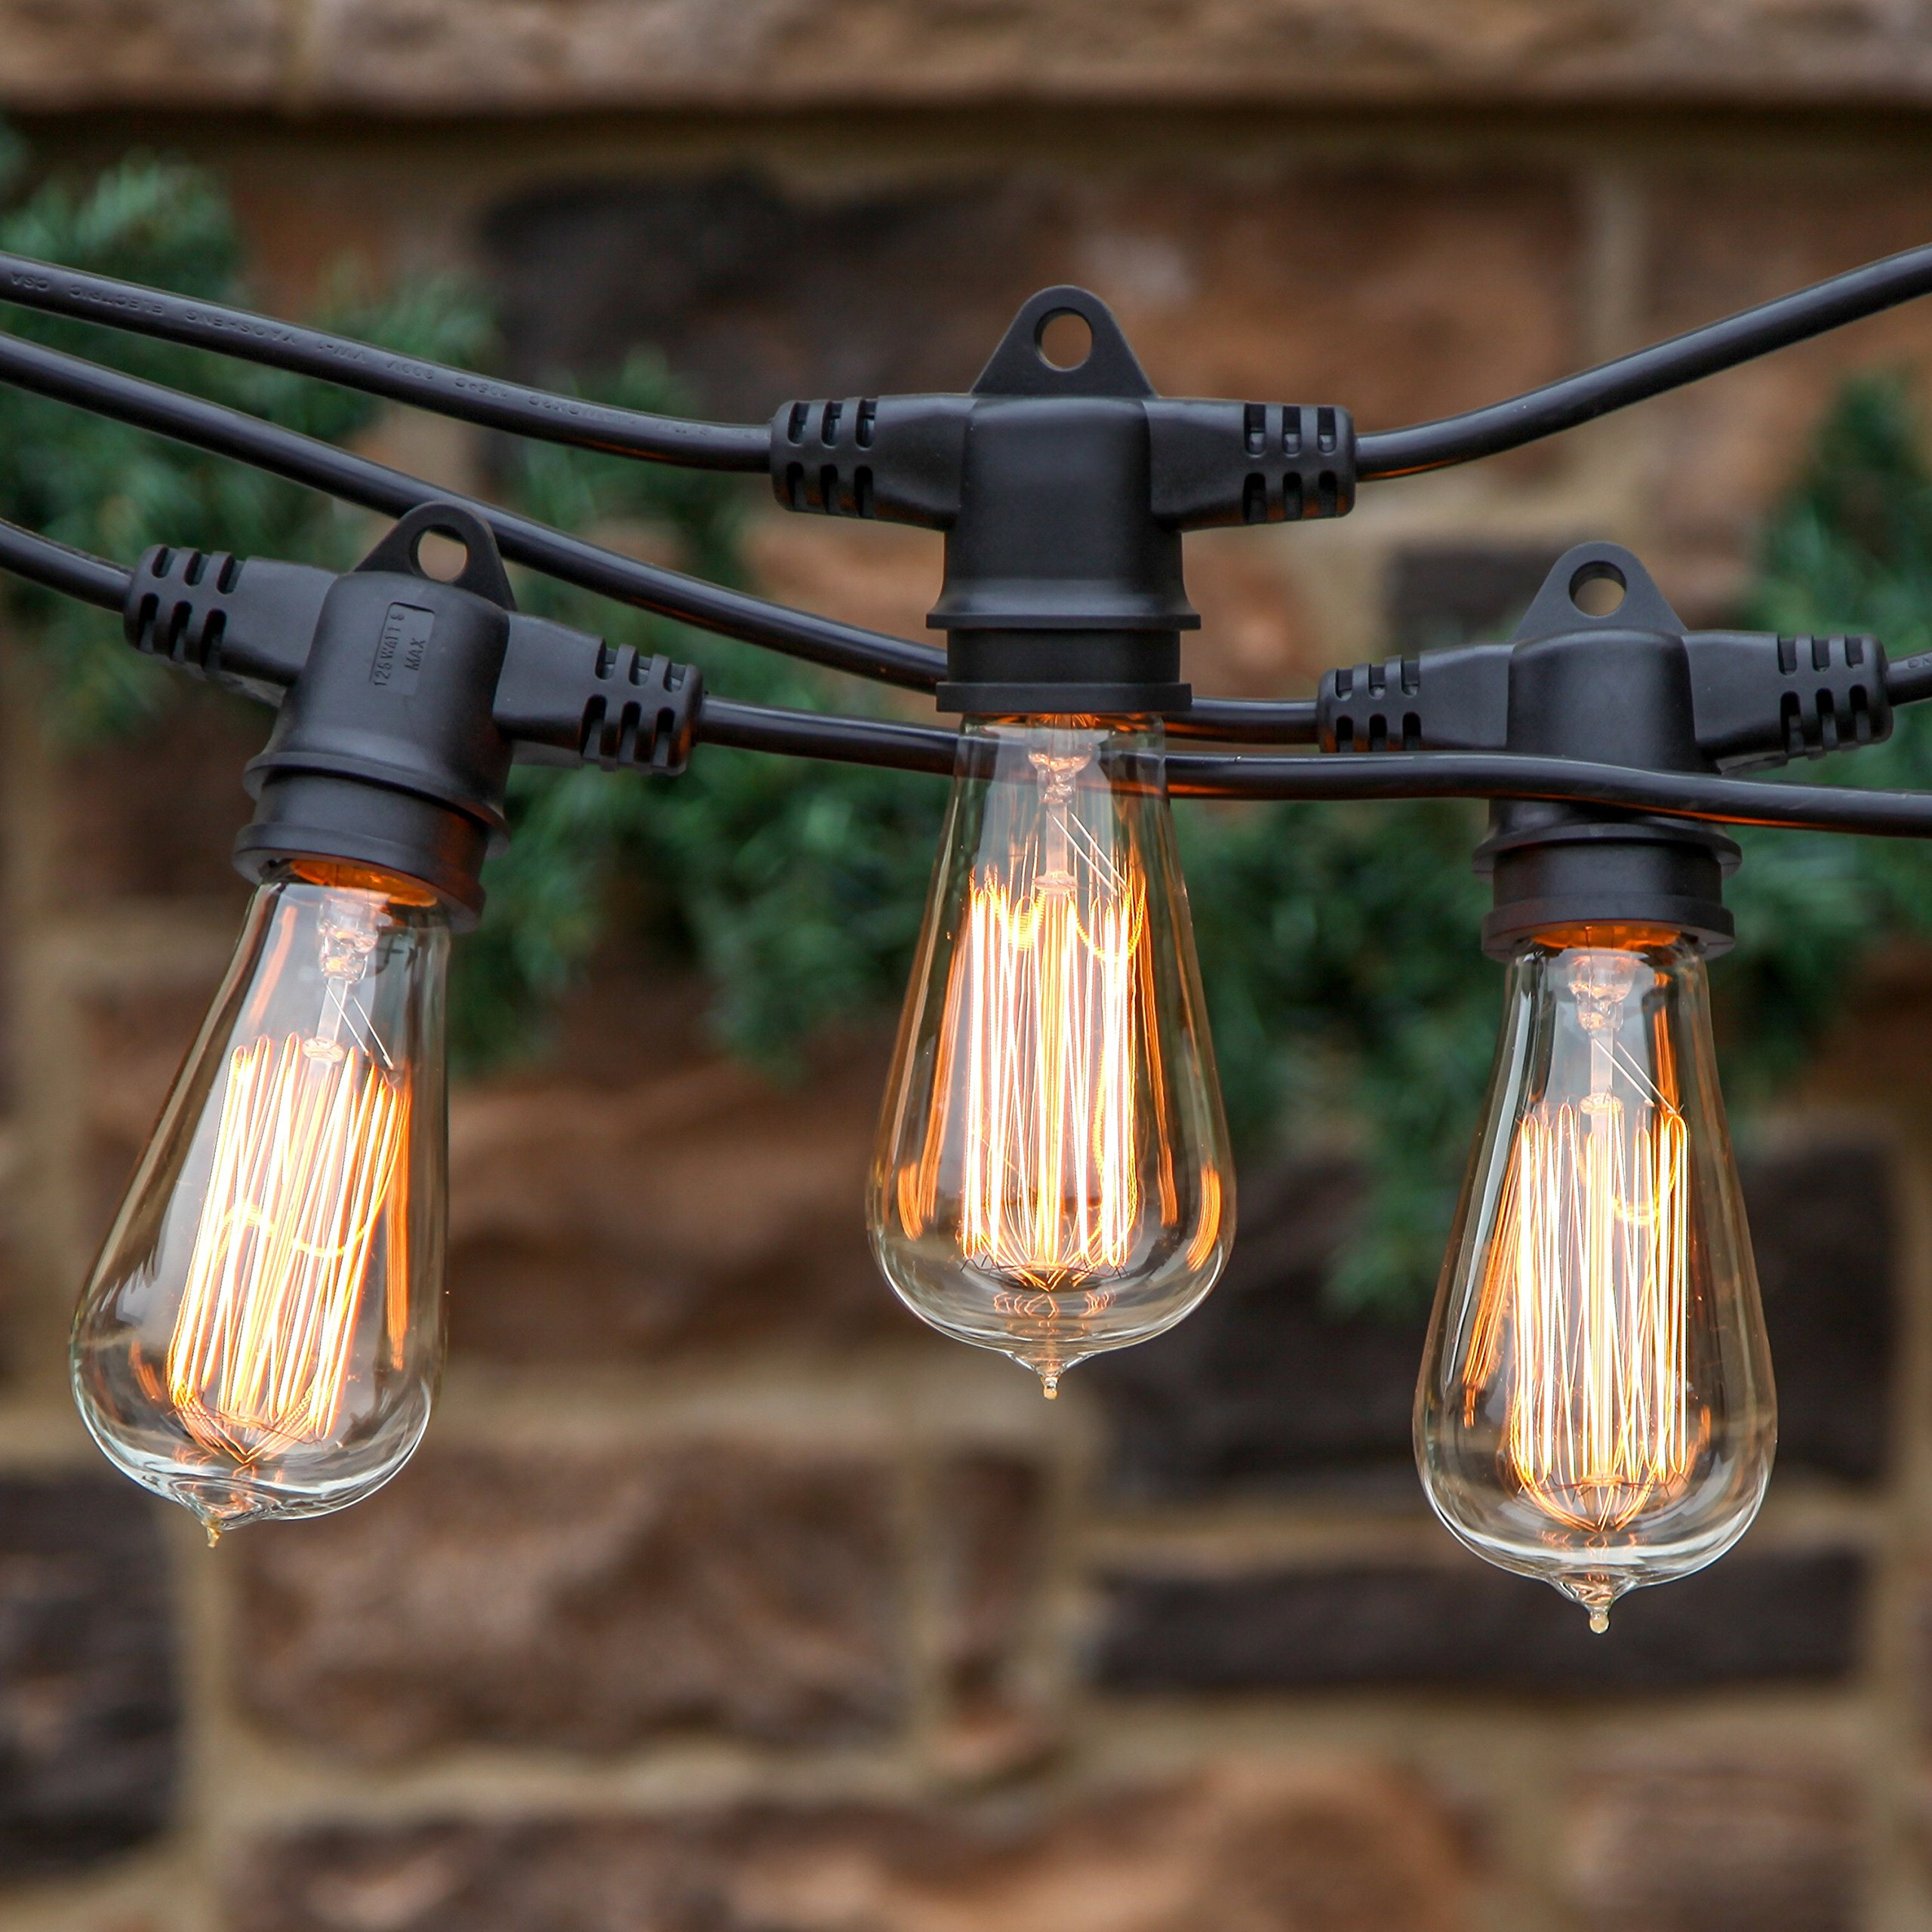 Outdoor String Lights Hardware: Ambience Pro Vintage Edition Outdoor